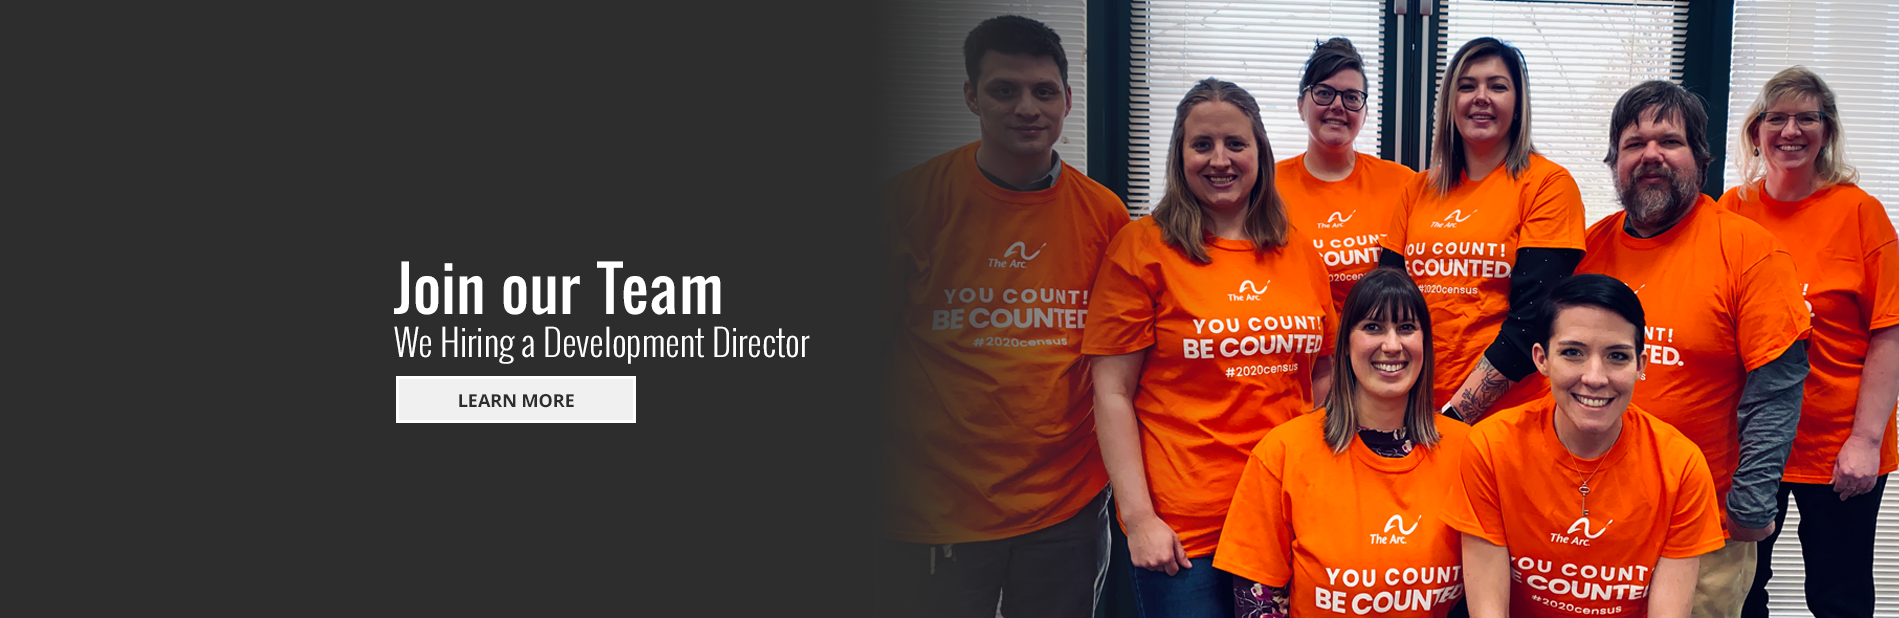 Join Our Team - We're Hiring A Development Director - Learn More